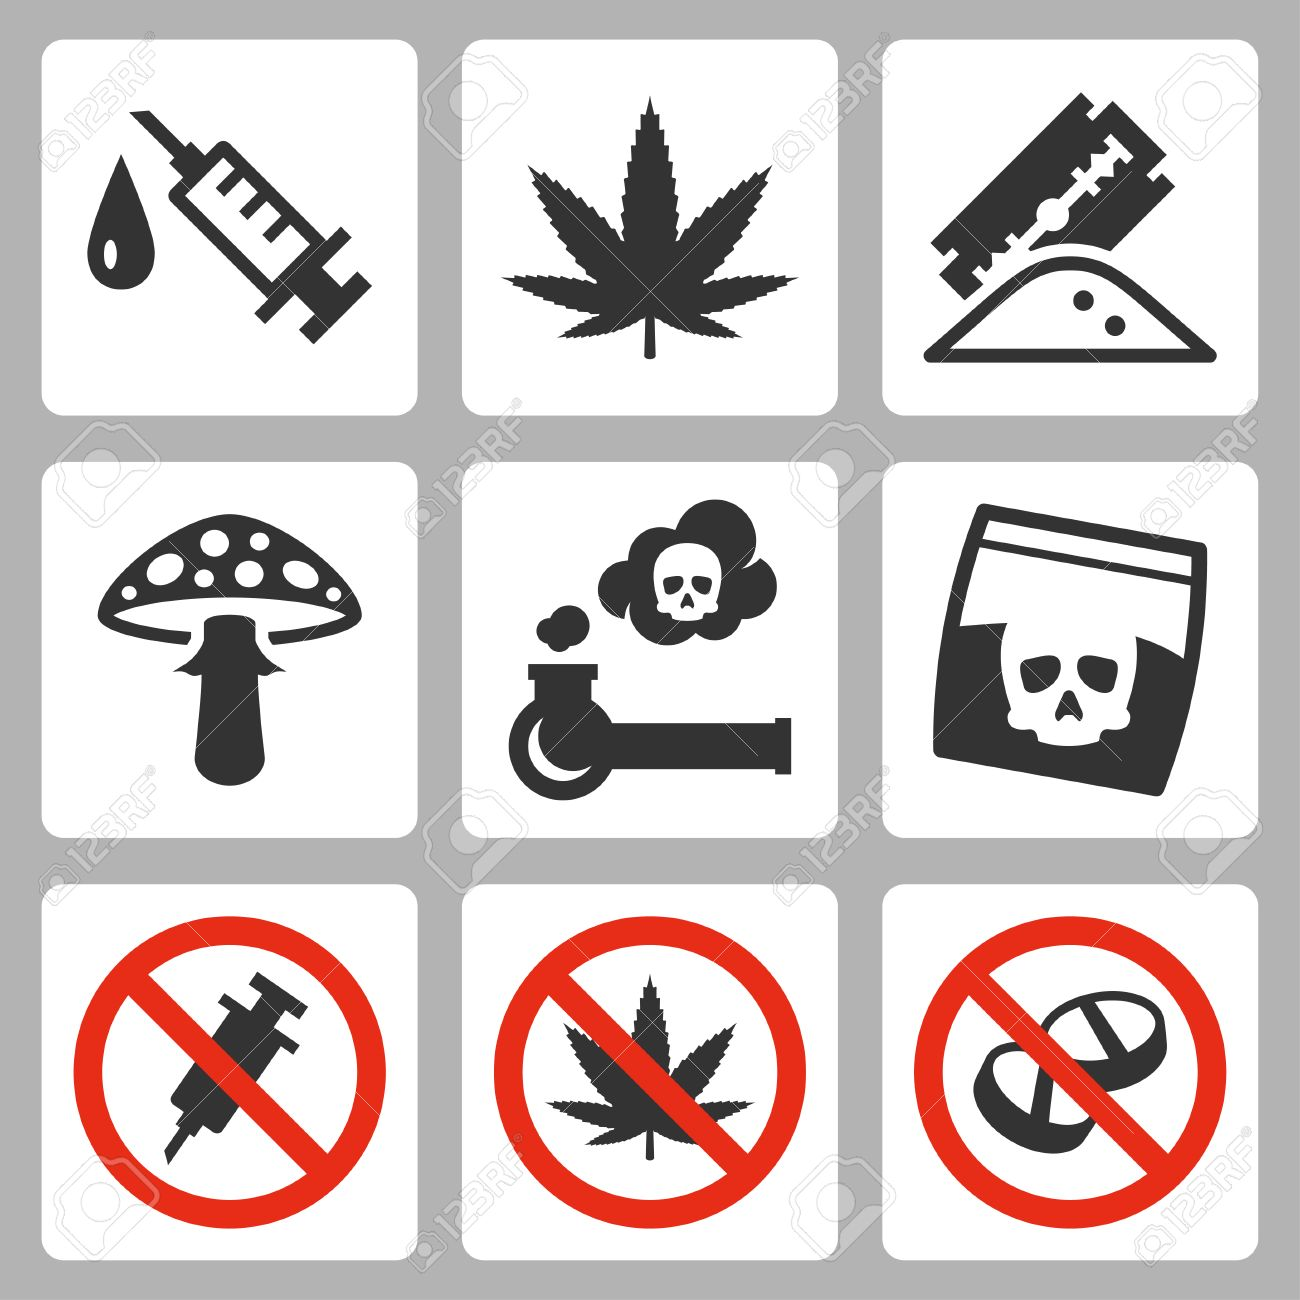 illegal drugs vector icons set royalty free cliparts vectors and stock illustration image 31058679 illegal drugs vector icons set